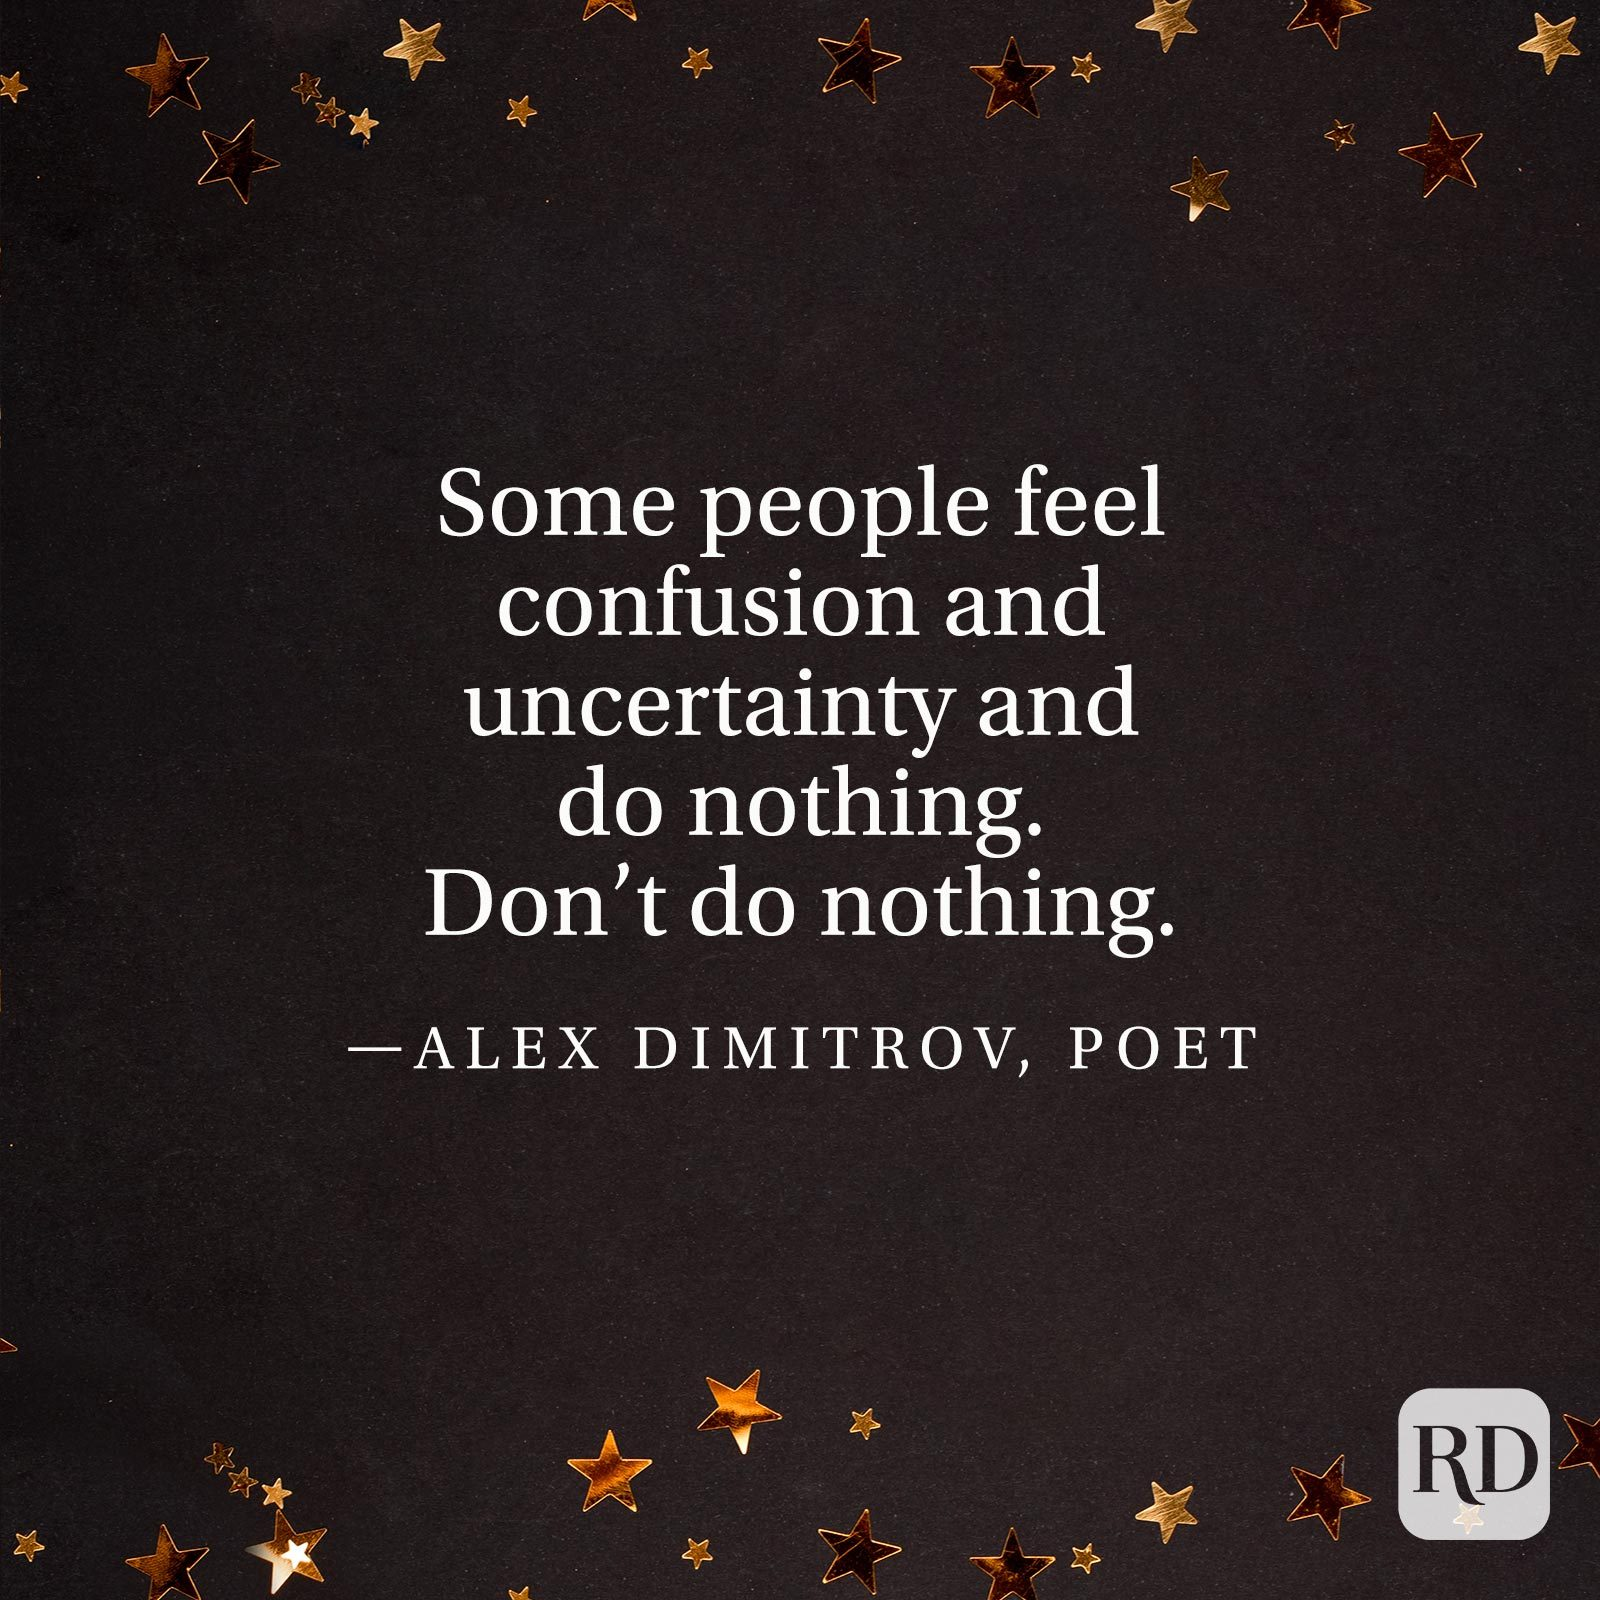 """Some people feel confusion and uncertainty and do nothing. Don't do nothing."" —Alex Dimitrov, poet."